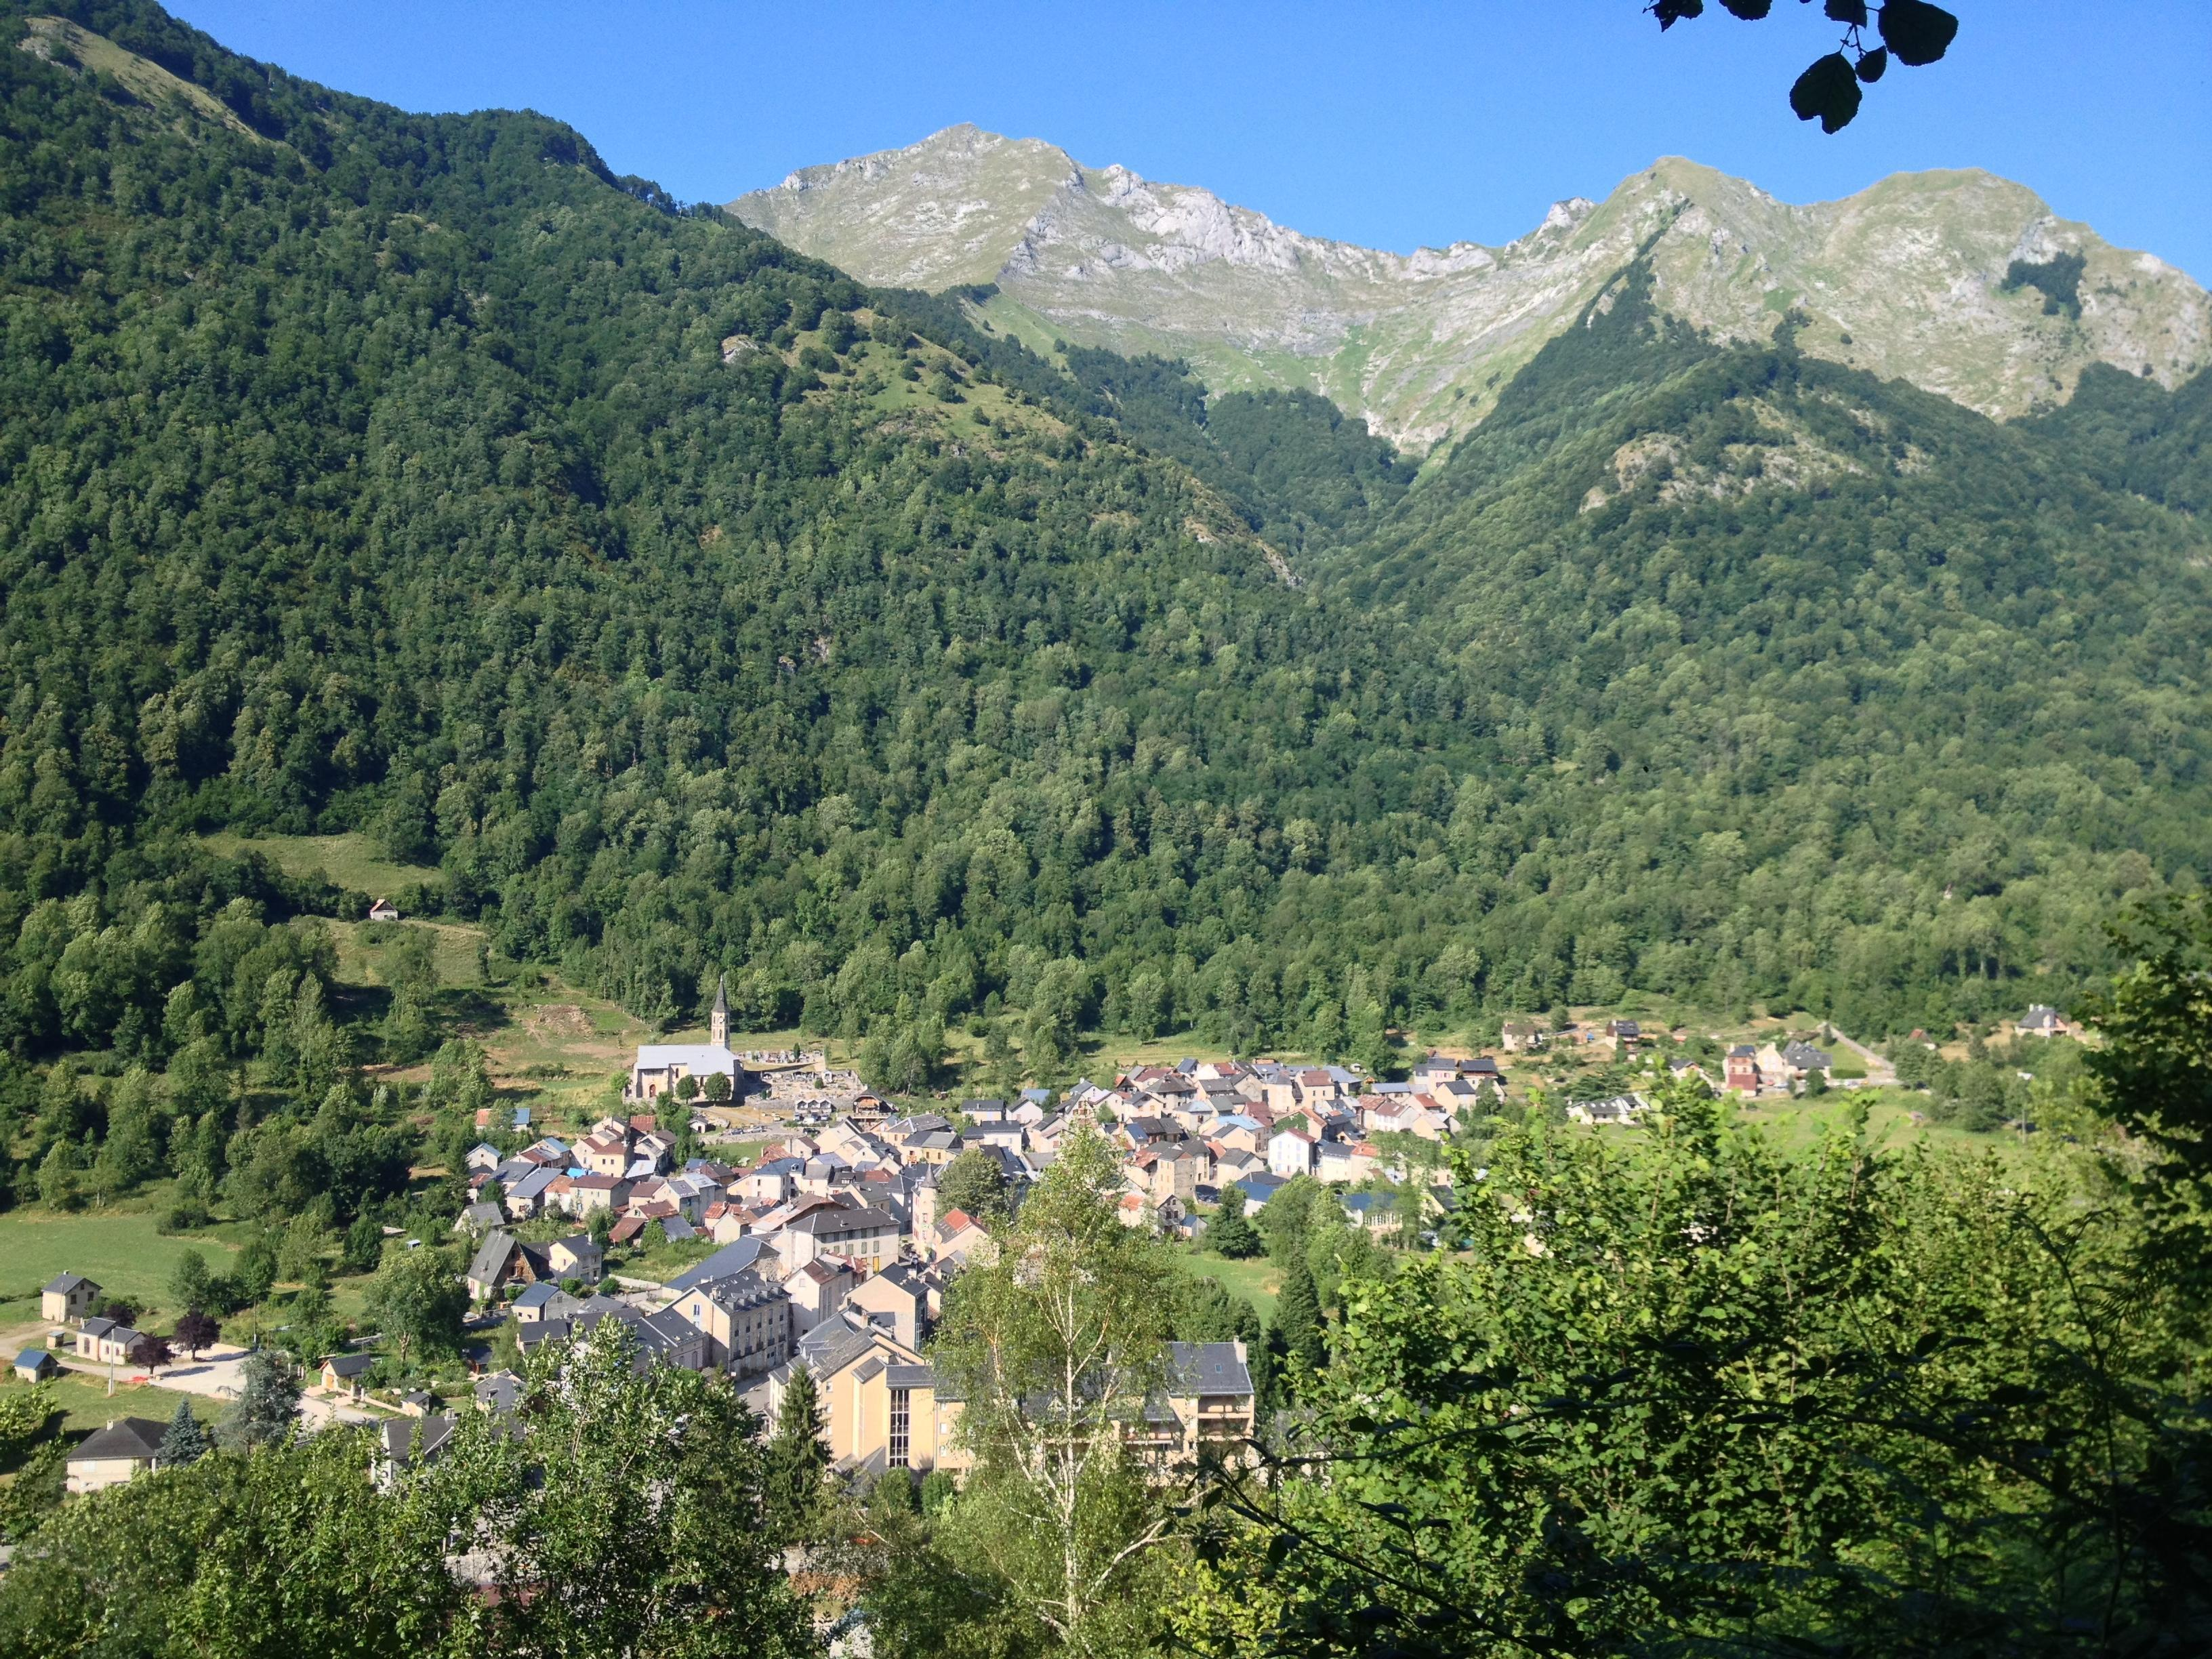 Aulus-les-Bains starts in the valley and climbs up the side of one mountain